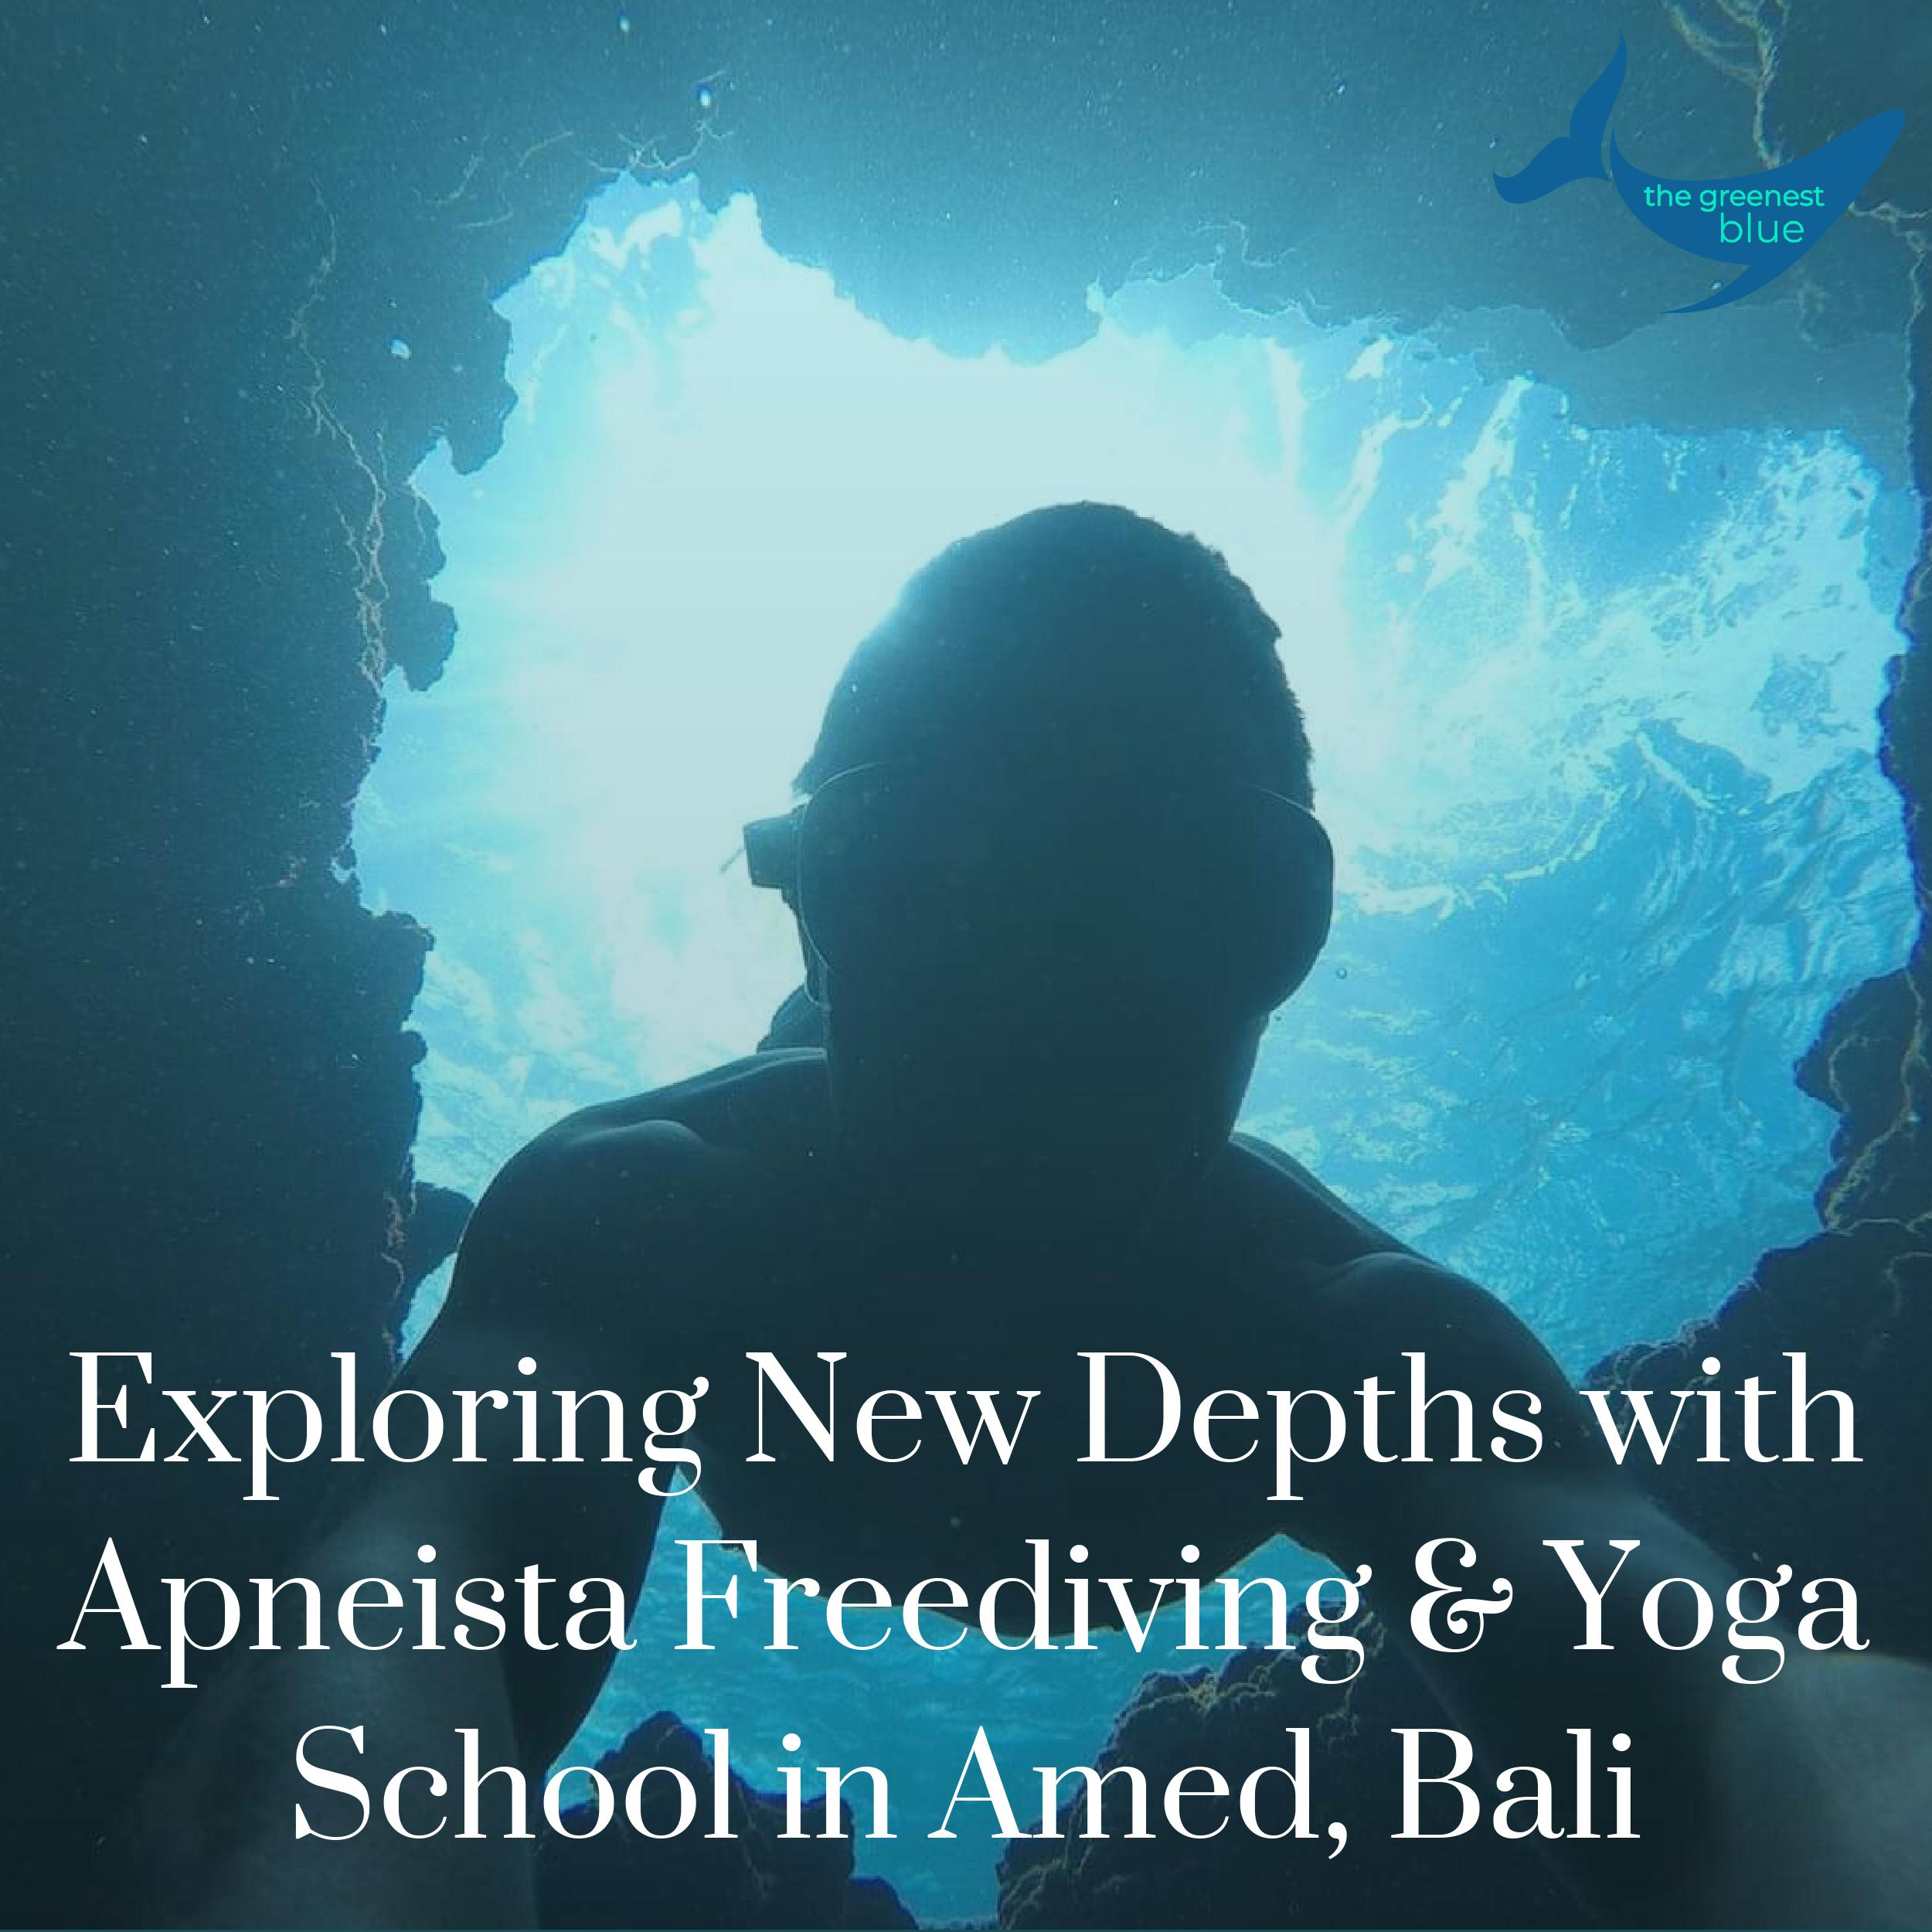 Freediving Apneista